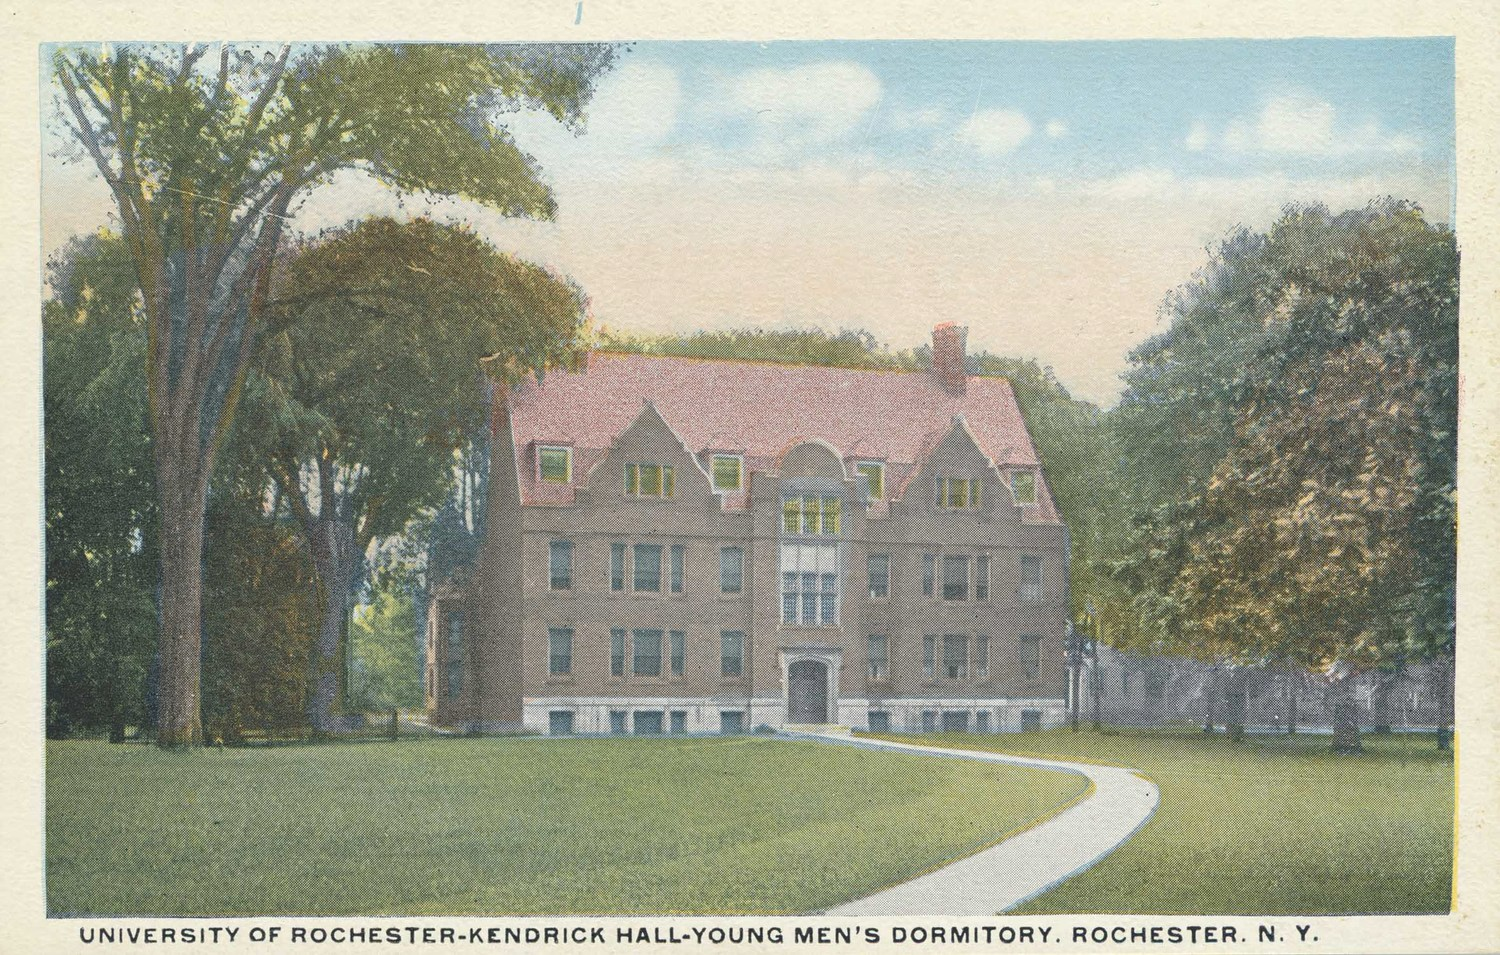 University of Rochester-Kendrick Hall-Young Men's Dormitory, Rochester, N.Y.